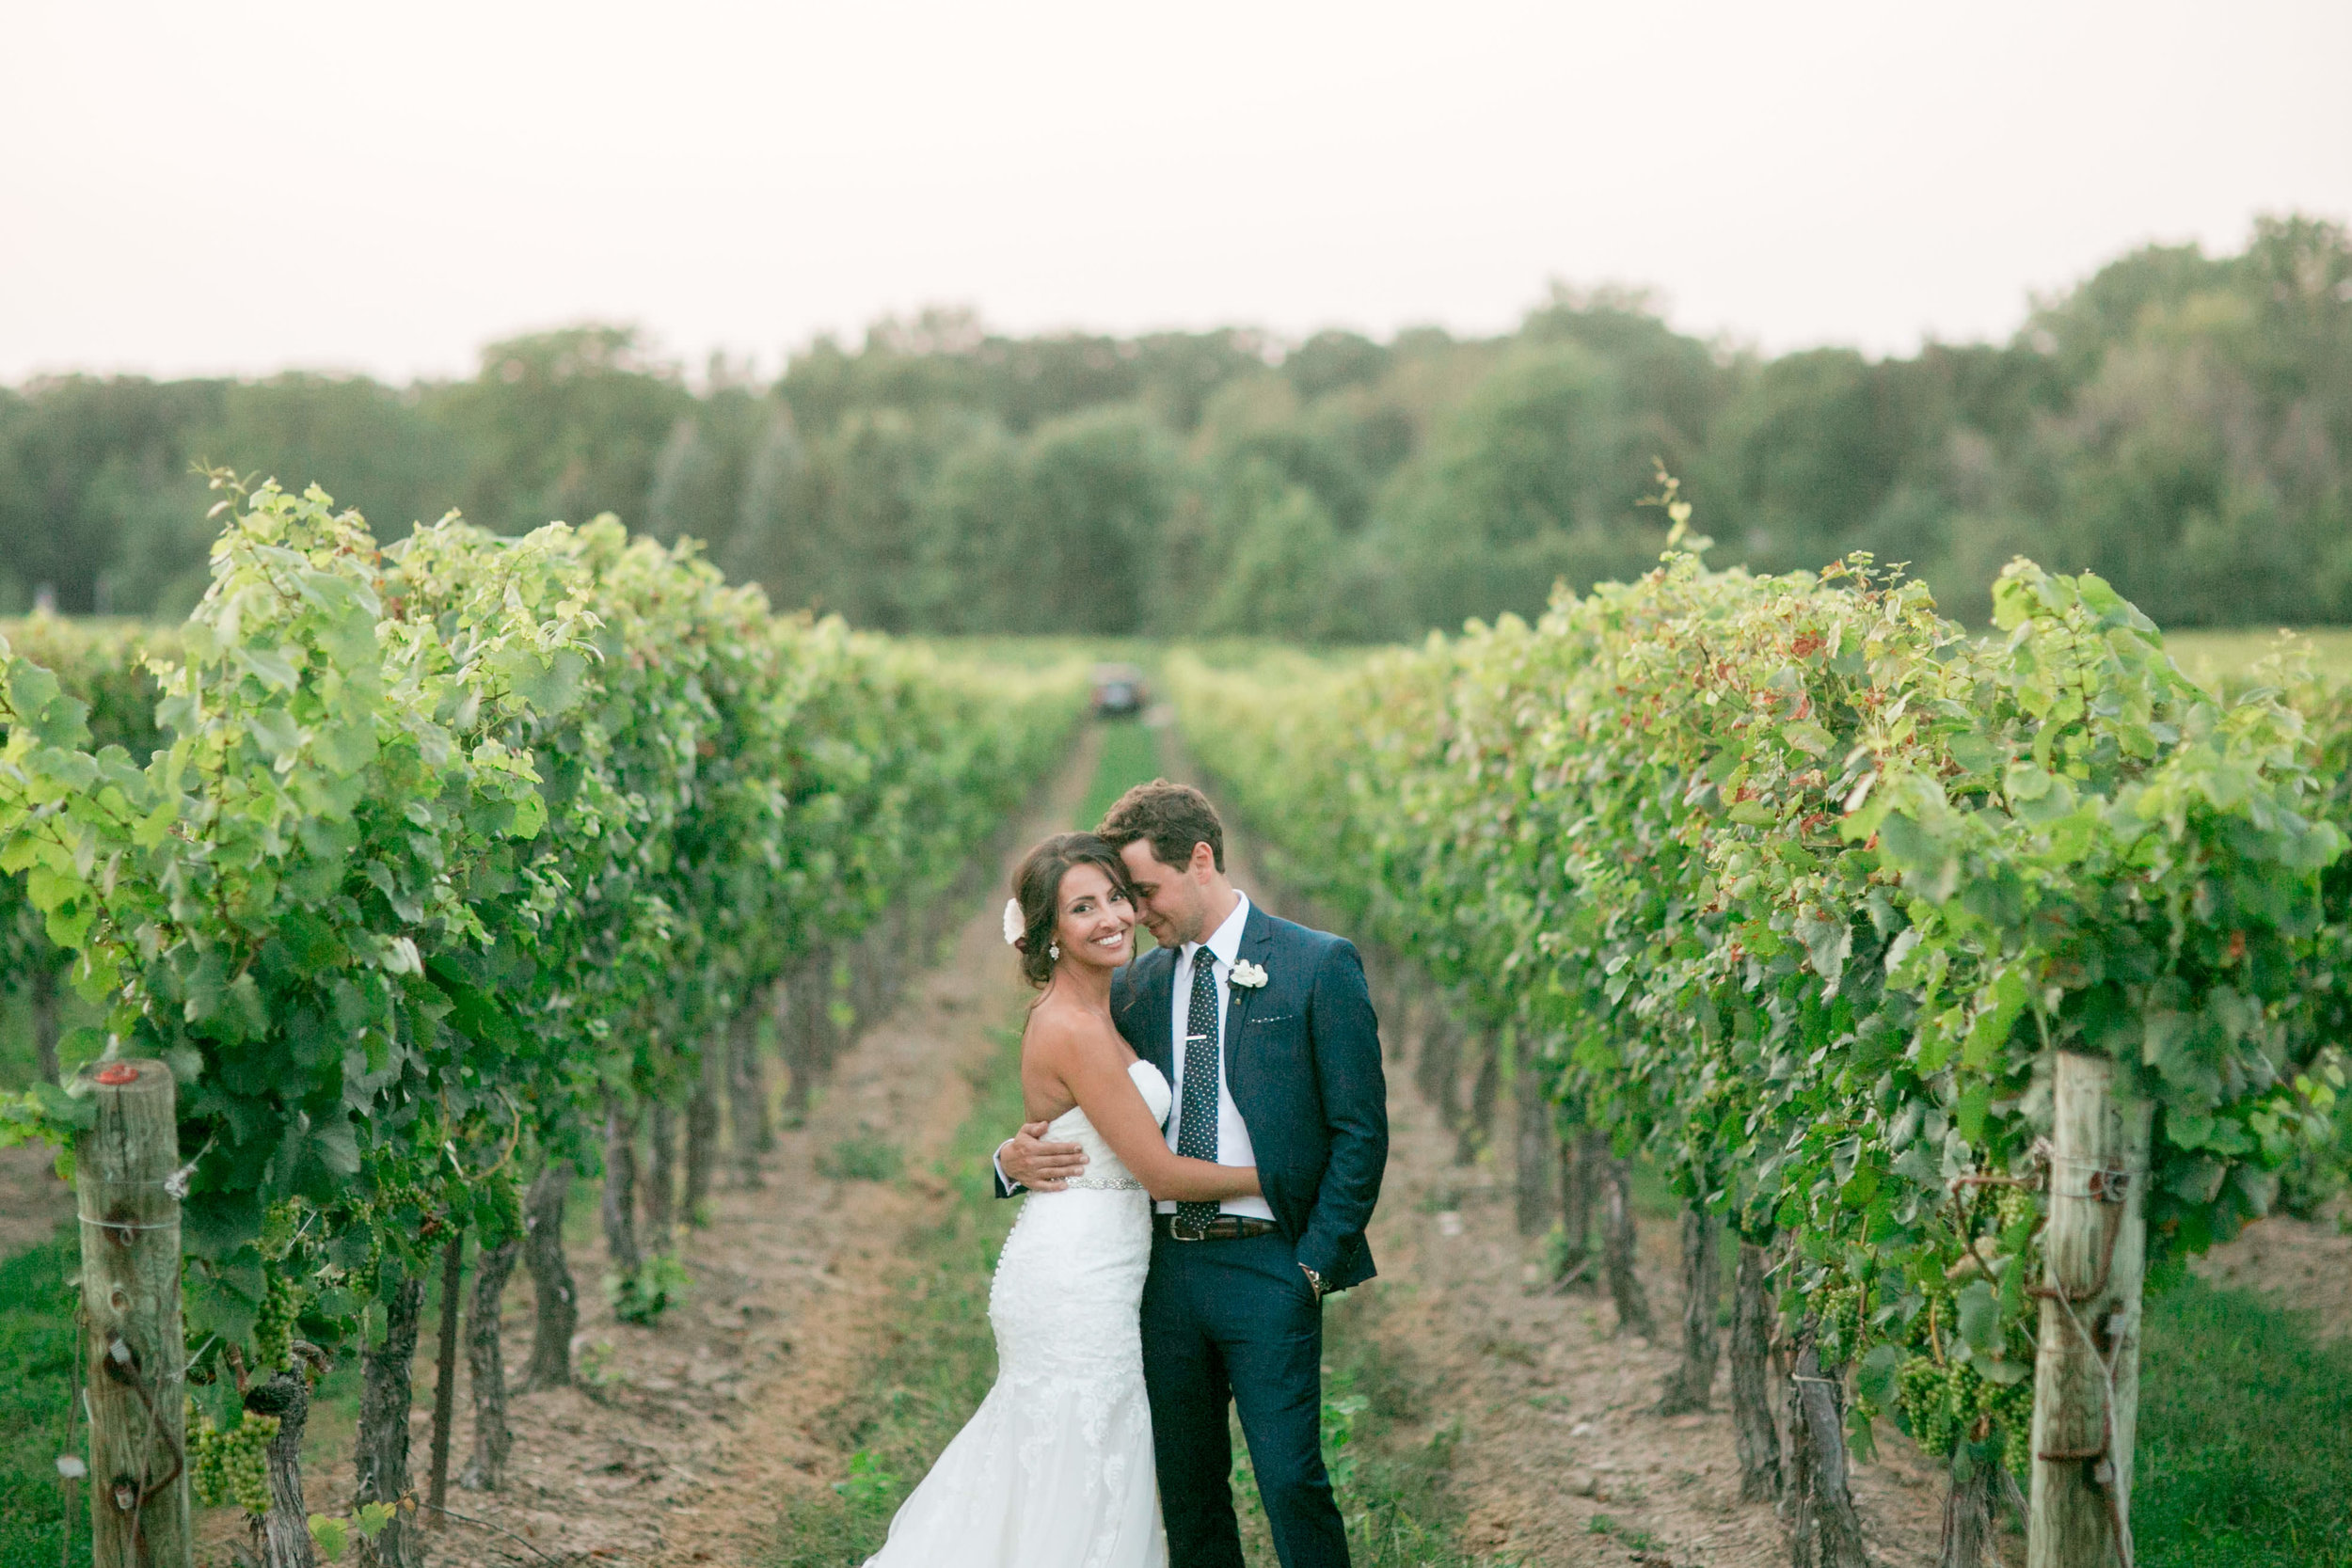 Sabrina___Jonathan_Wedding___High_Res._Finals_Daniel_Ricci_Weddings_654.jpg